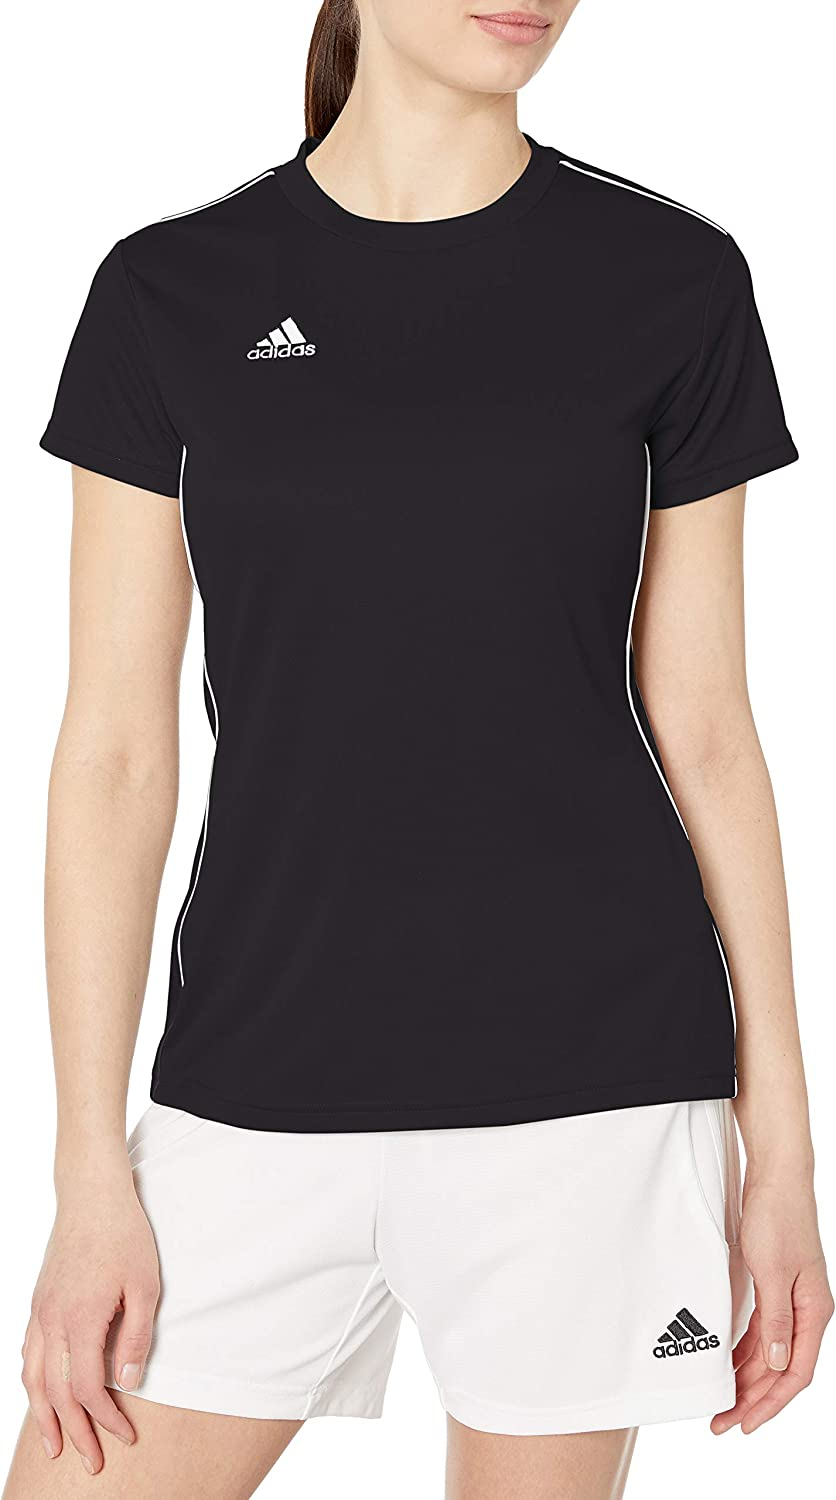 adidas Womens Core 18 Aeroready Primegreen Regular Fit Soccer Short Sleeve Jersey: Clothing